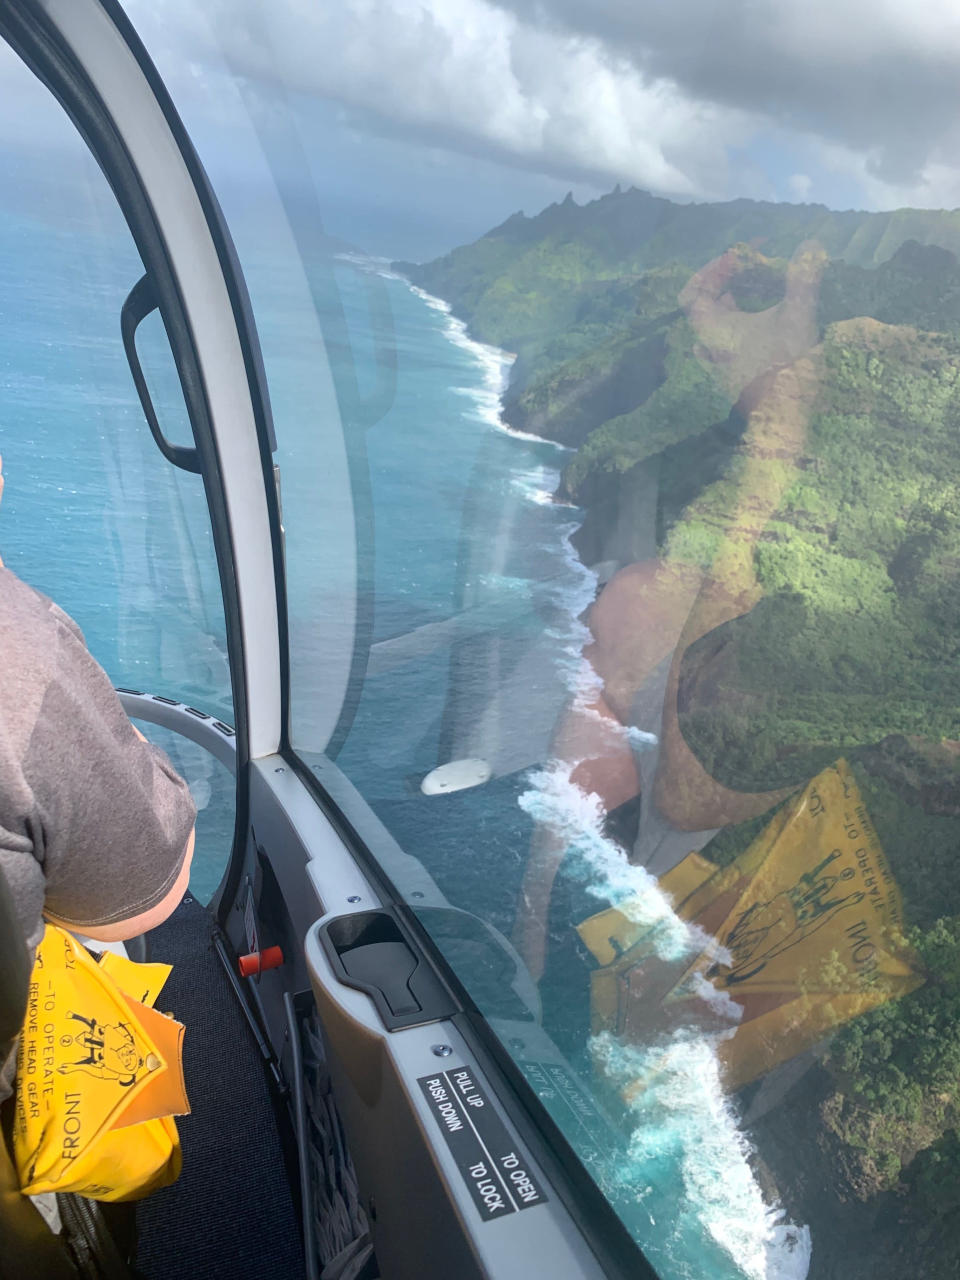 FILE - This Dec. 17, 2019 file photo shows the Na Pali Coast on the island of Kauai in Hawaii. The small, tight-knit community of about 72,000 people on Kauai spent the first seven months of the pandemic mostly COVID-free. Then in October, statewide travel restrictions eased and the pandemic came pouring in. (AP Photo/Maryclaire Dale, File)